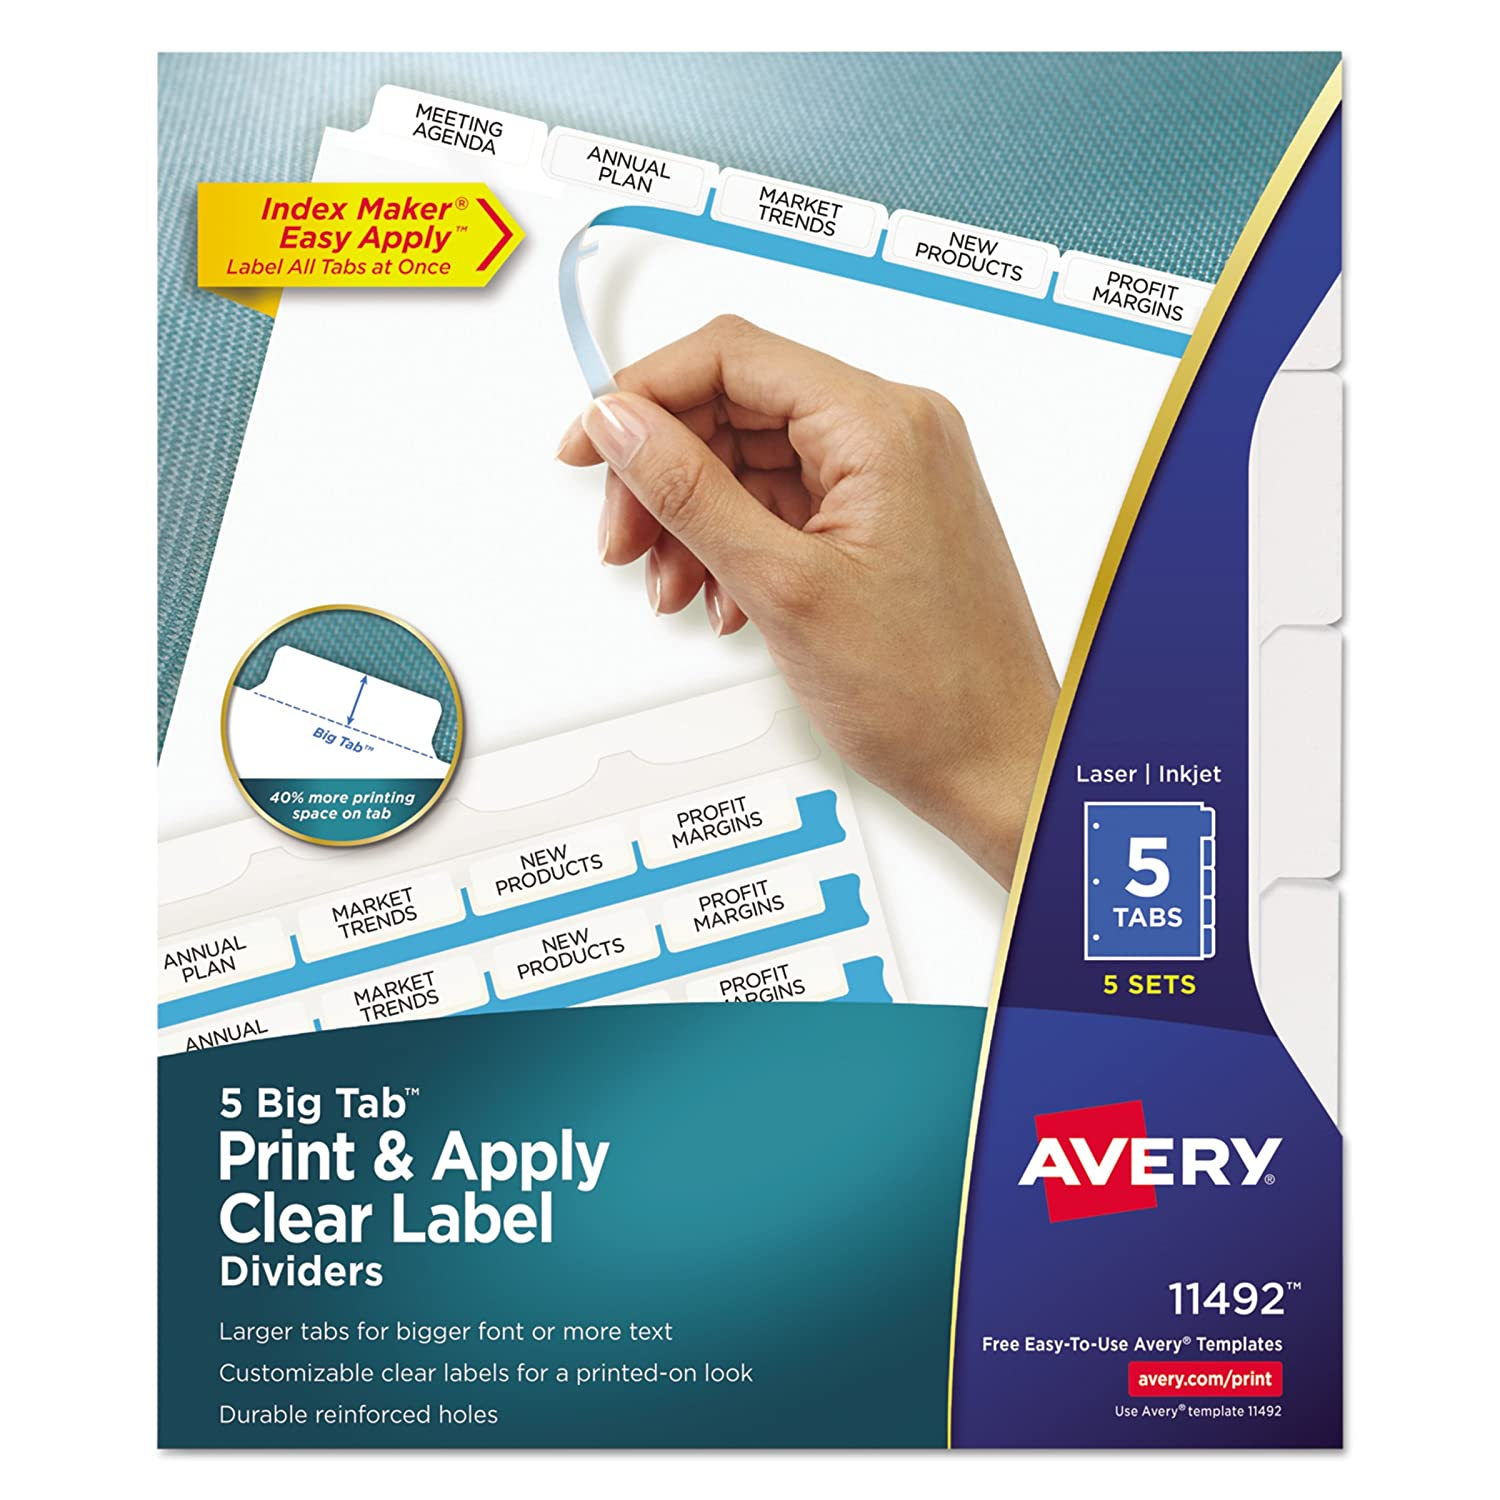 amazoncom avery big tab dividers print apply clear label index maker easy apply strip 5 tab dividers 1 set 11490 binder index dividers office